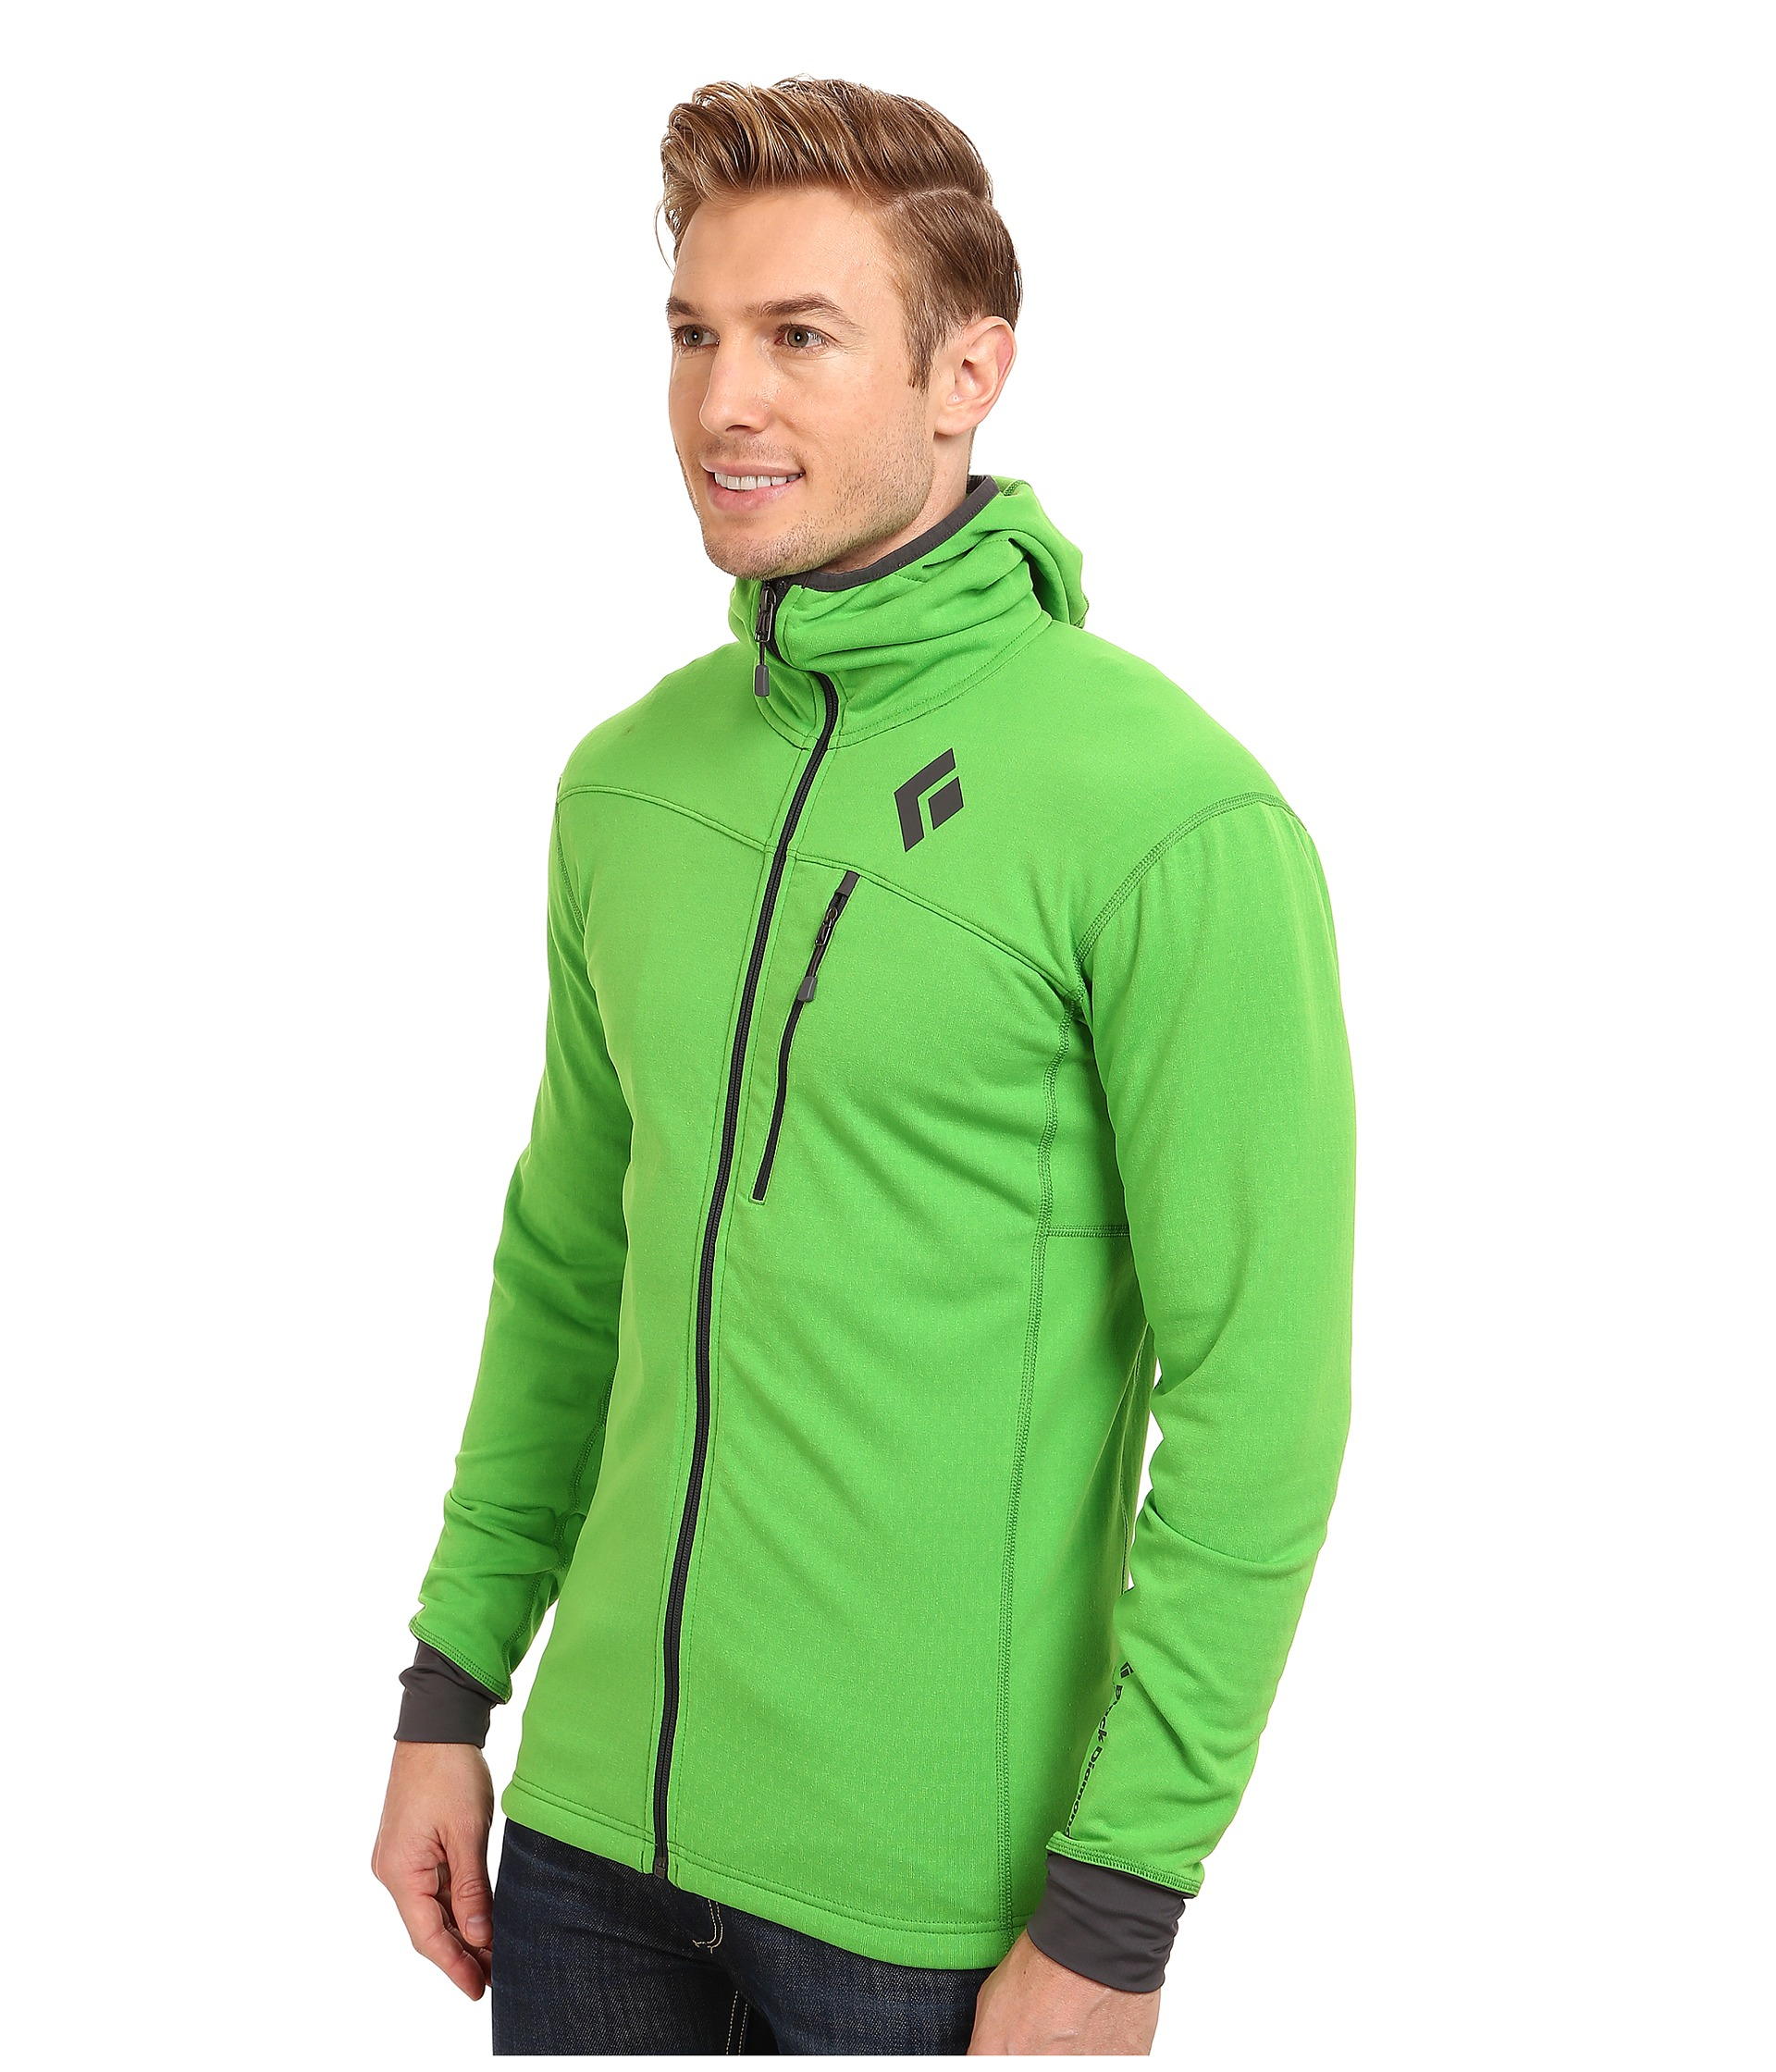 the gallery for gt jackets for men 2014